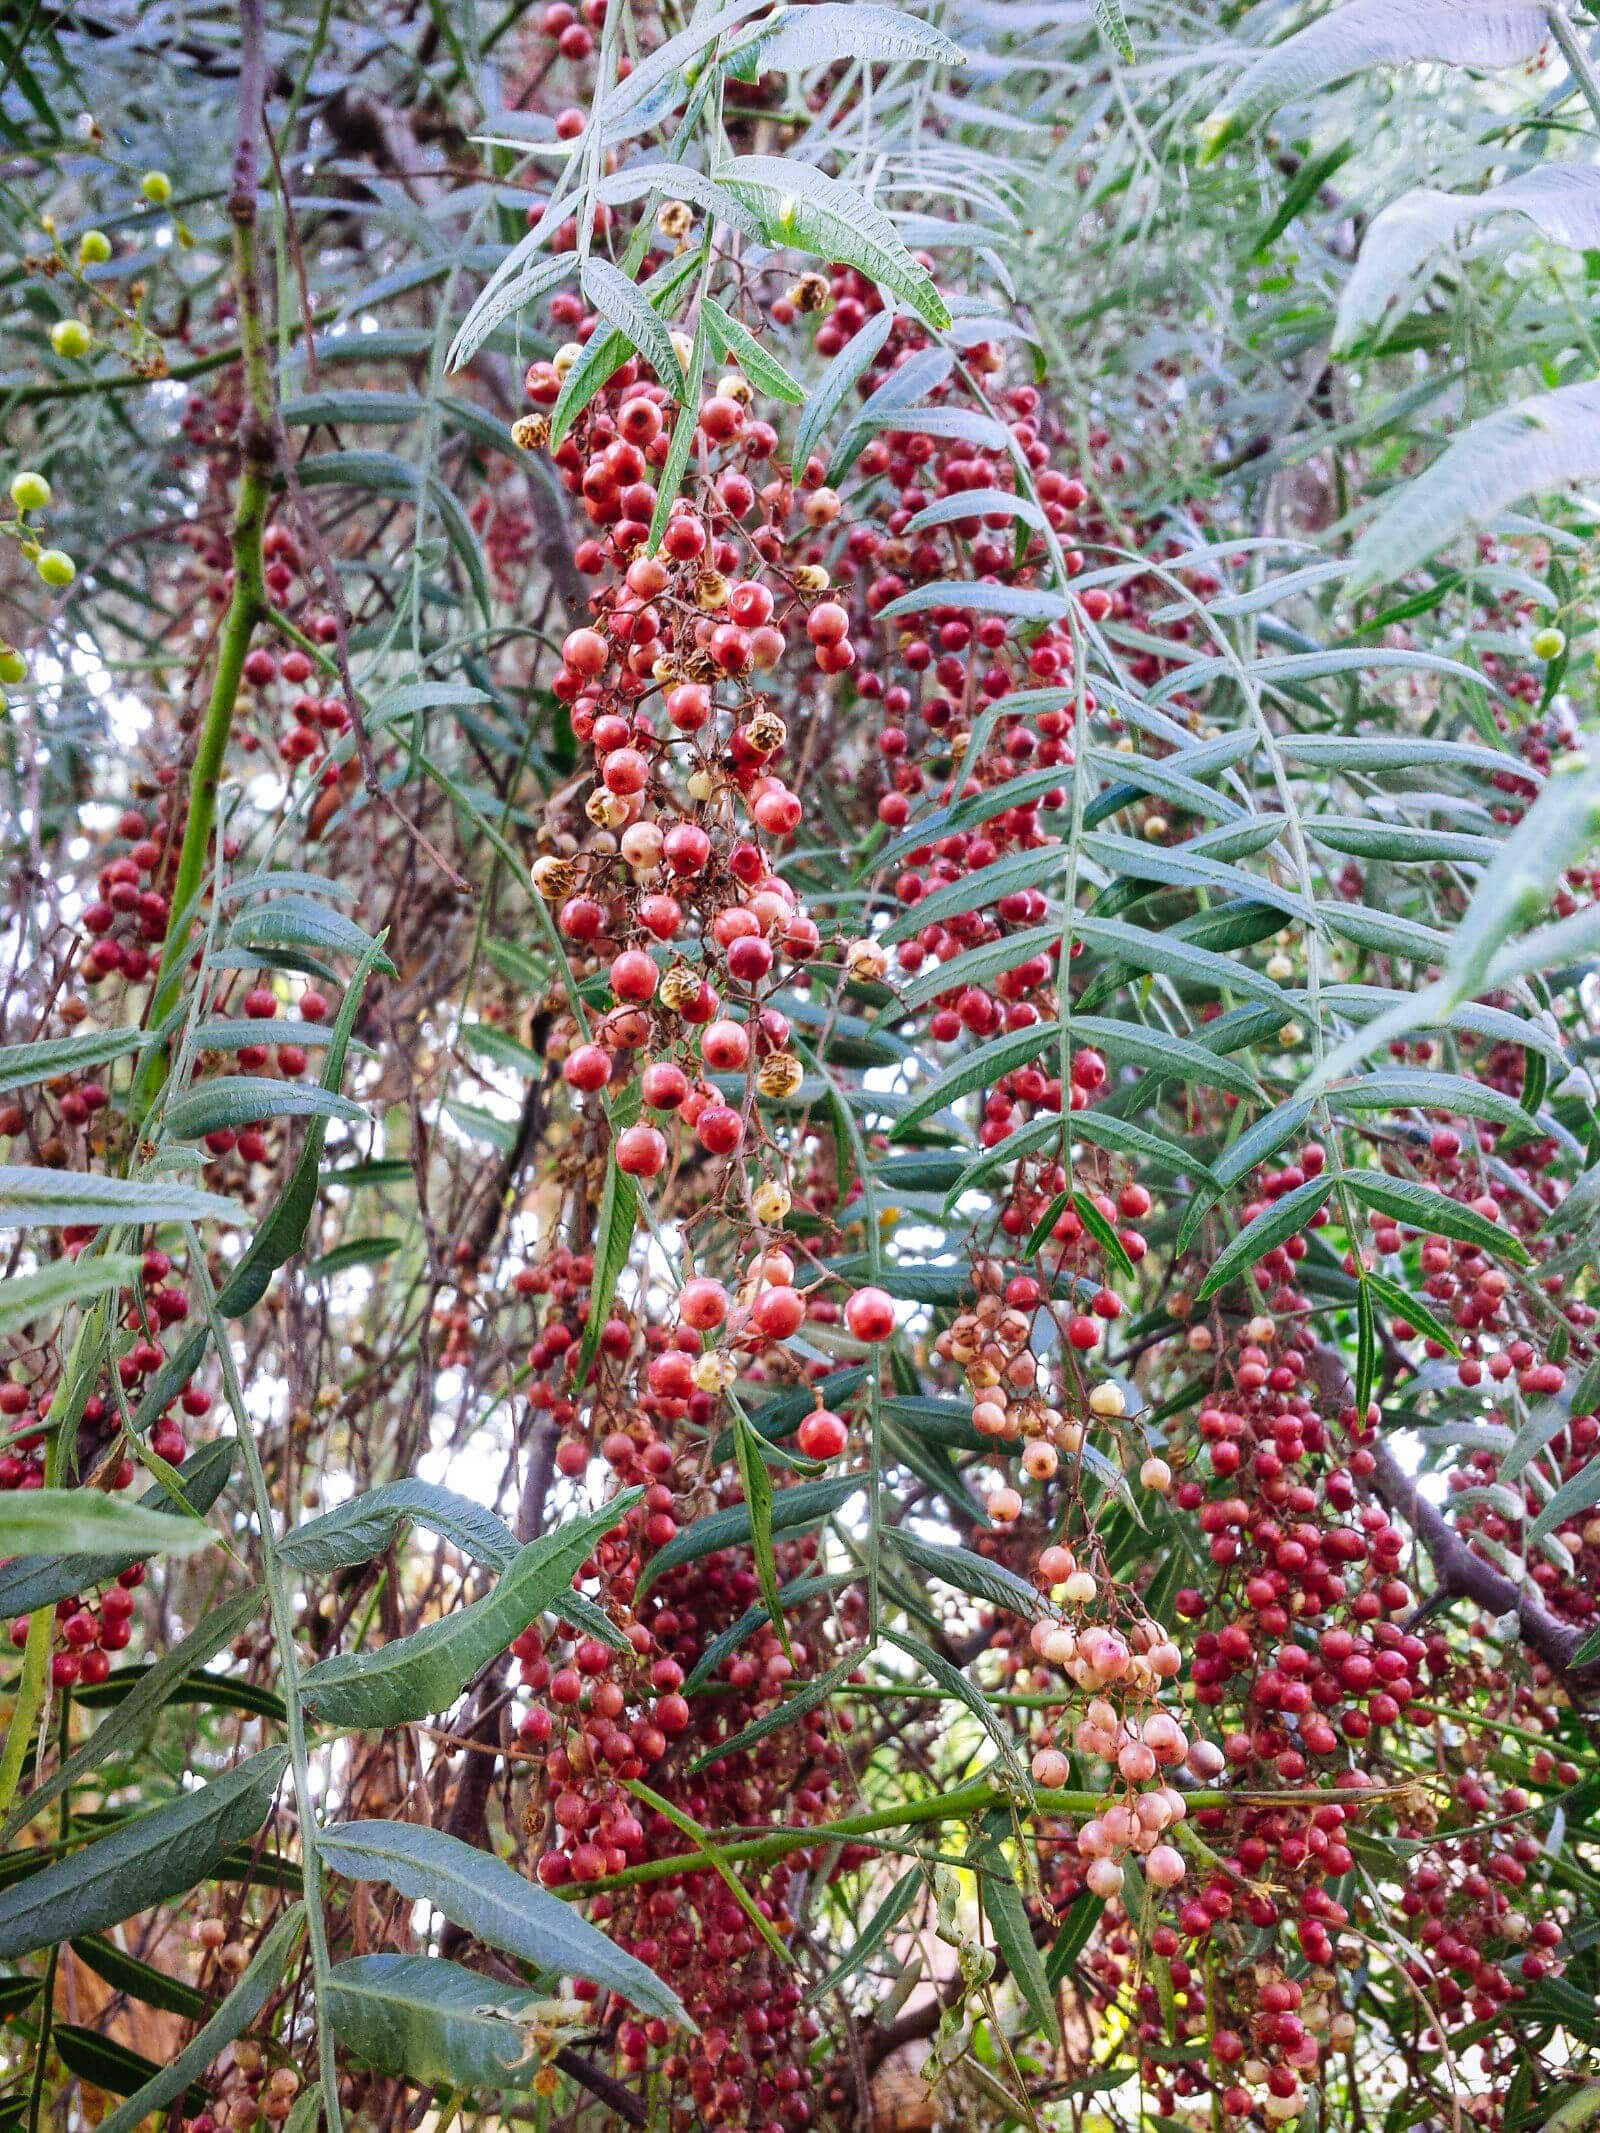 Foraging for Peruvian pink peppercorns